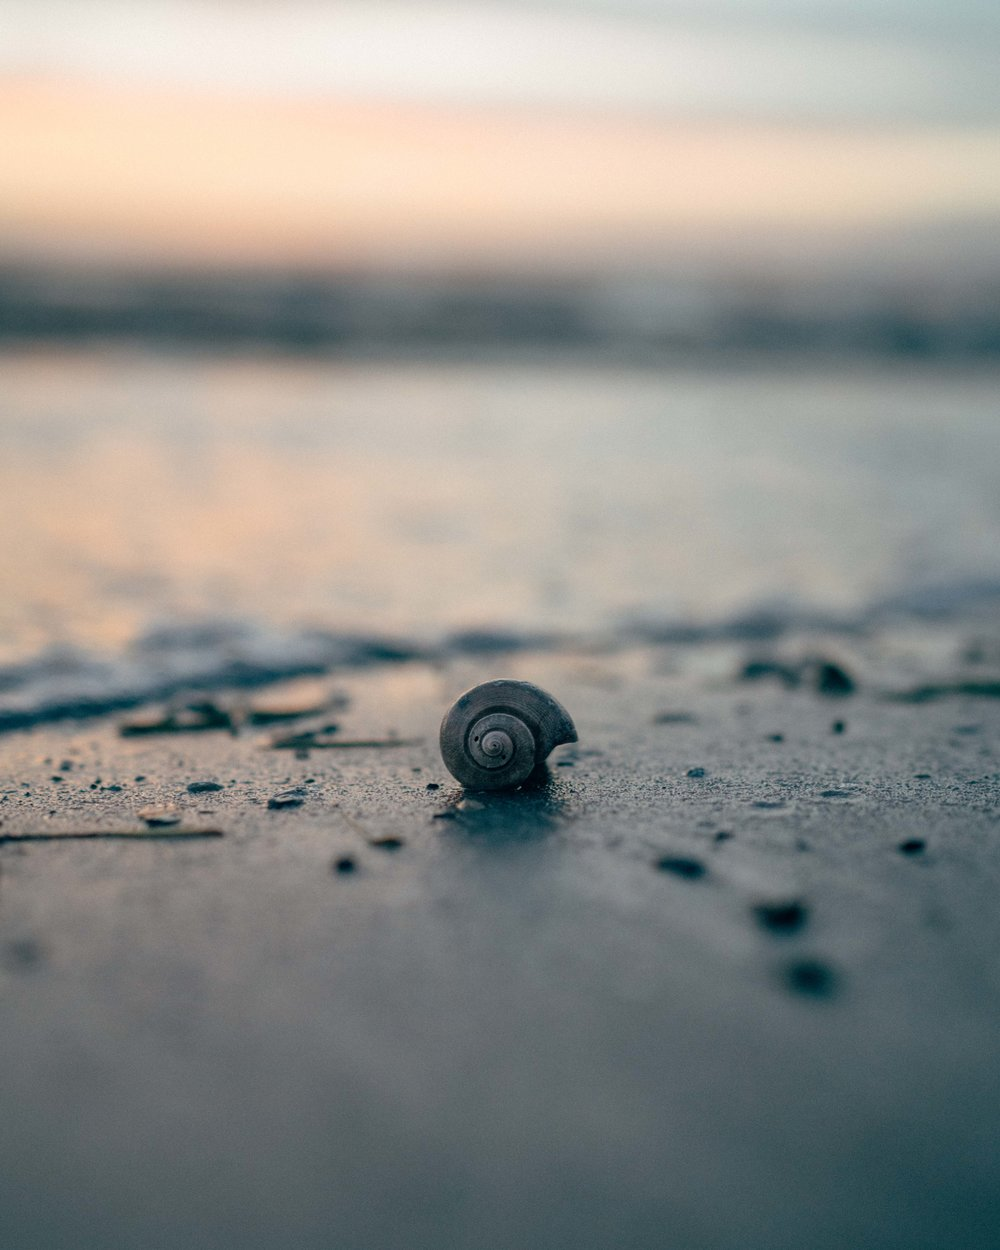 A cute little shell found along the sea shore at Ben Davies sunset spot.